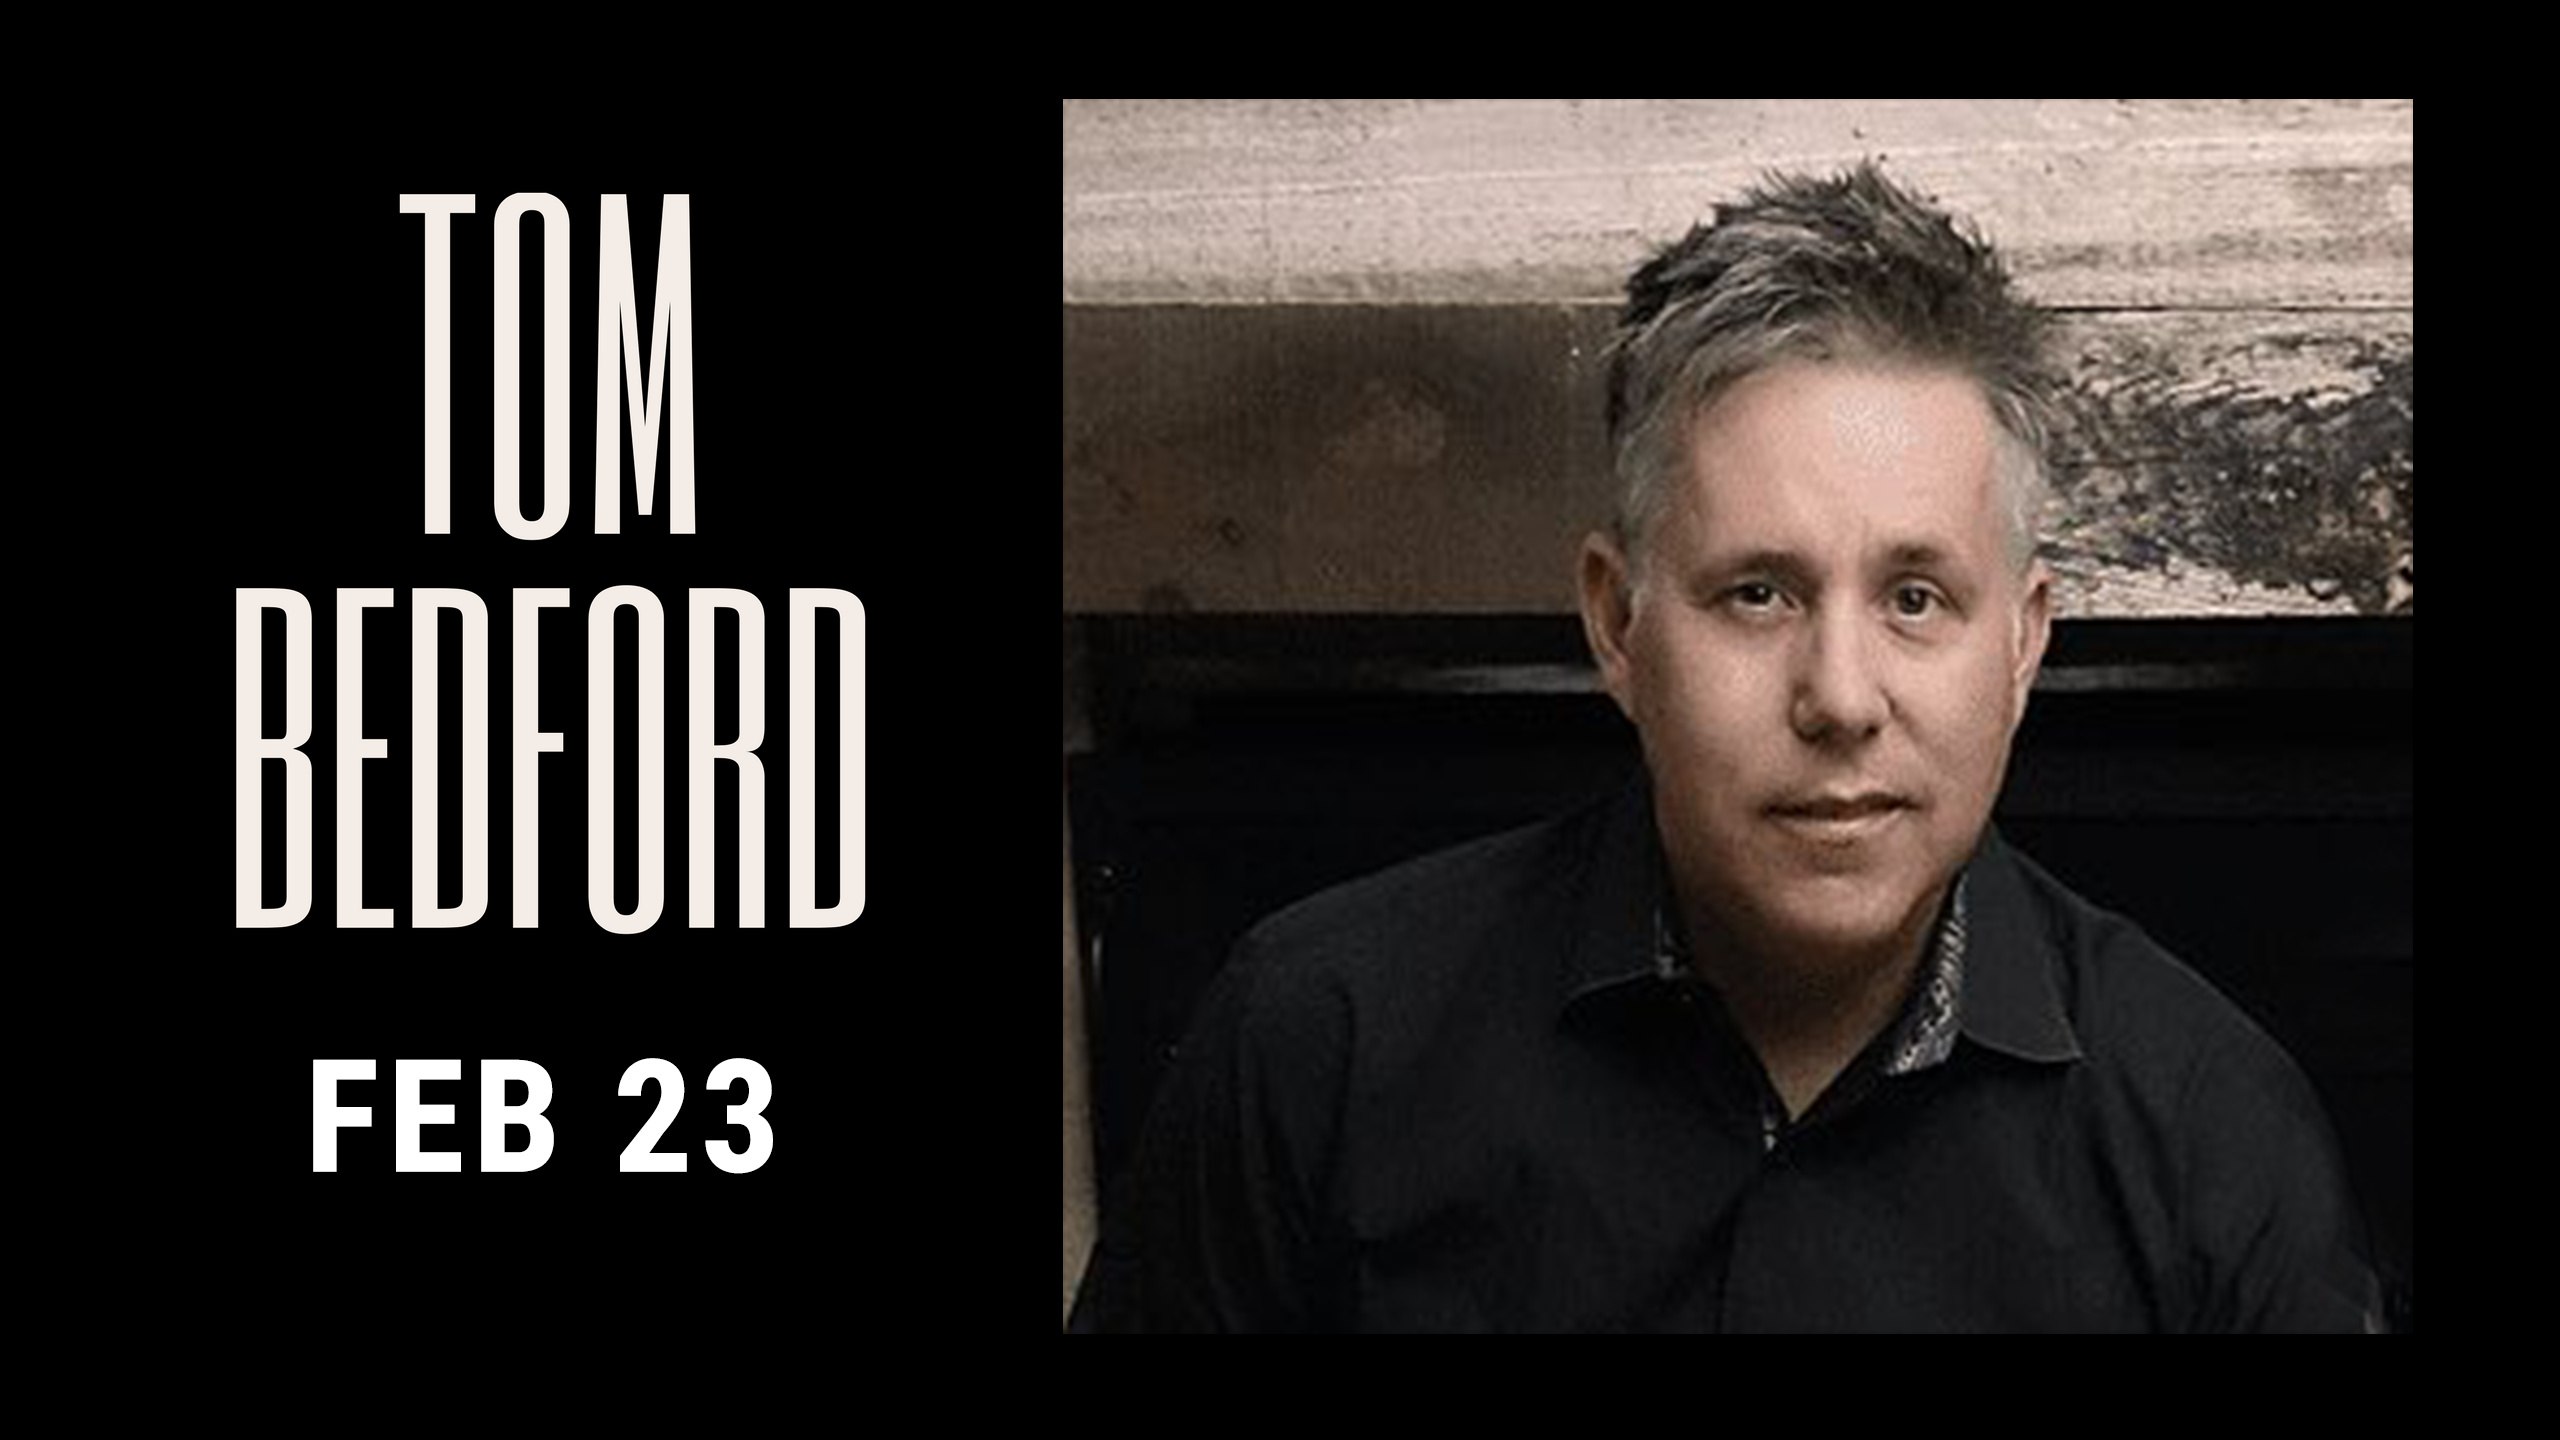 Pastor Tom Bedford from Bread of Life Fresno will be with us this Sunday at 10:15 AM.